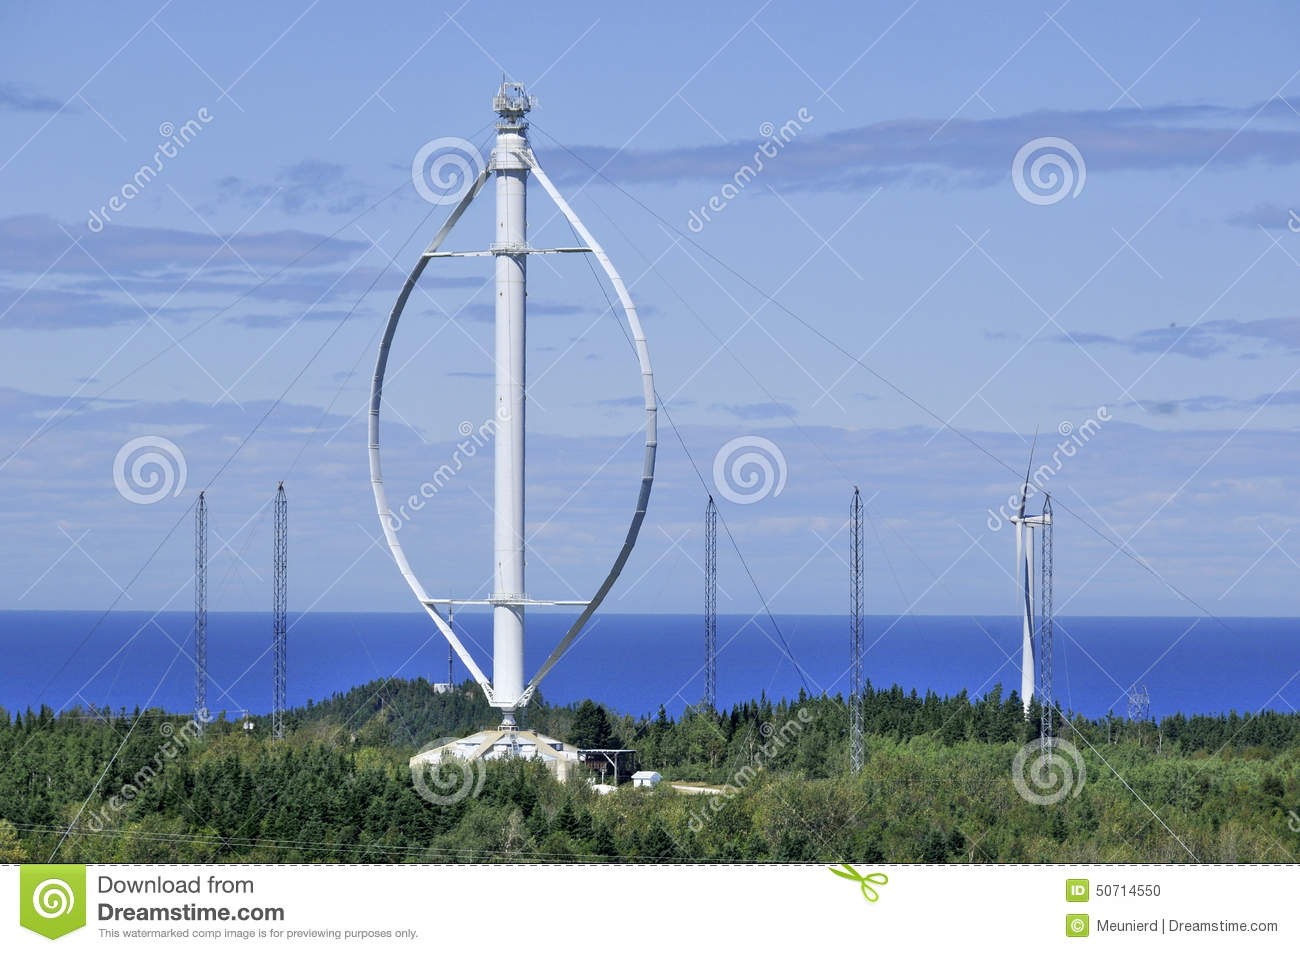 World's Largest Vertical Axis Wind Turbine Editorial Image